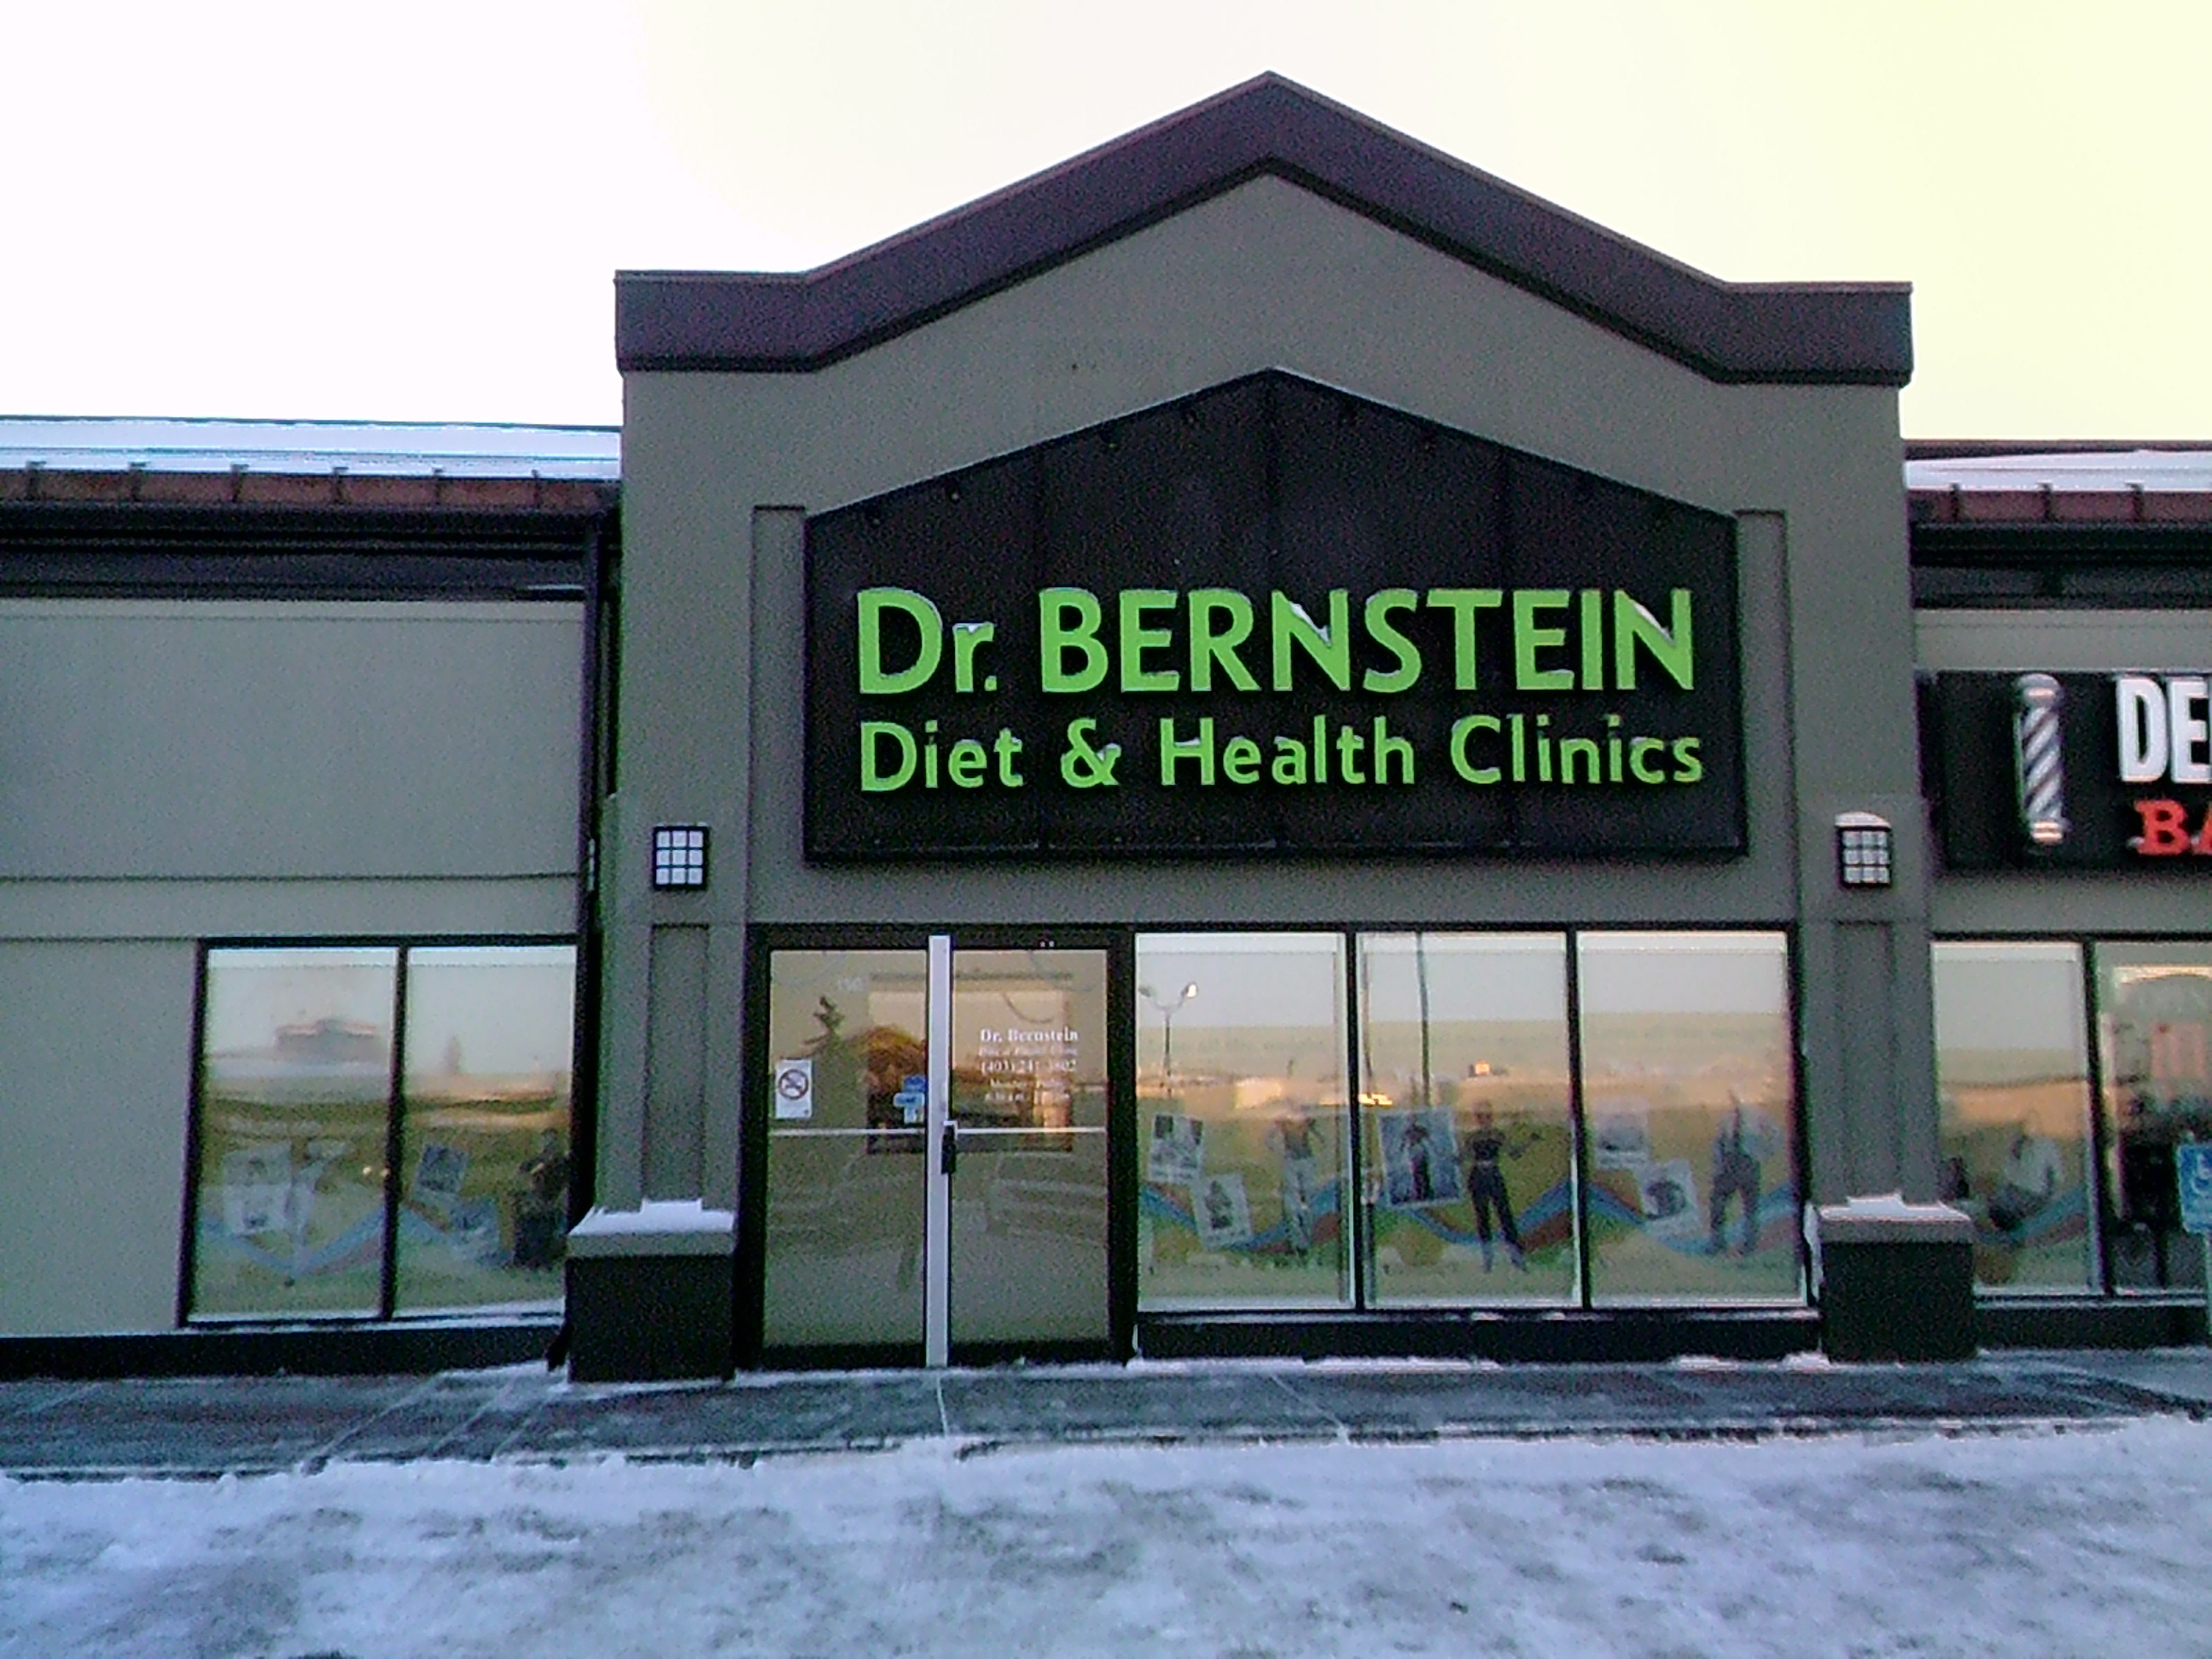 Dr. Bernstein Weight Loss & Diet Clinic, Crowfoot Rd. NW - Calgary, Alberta